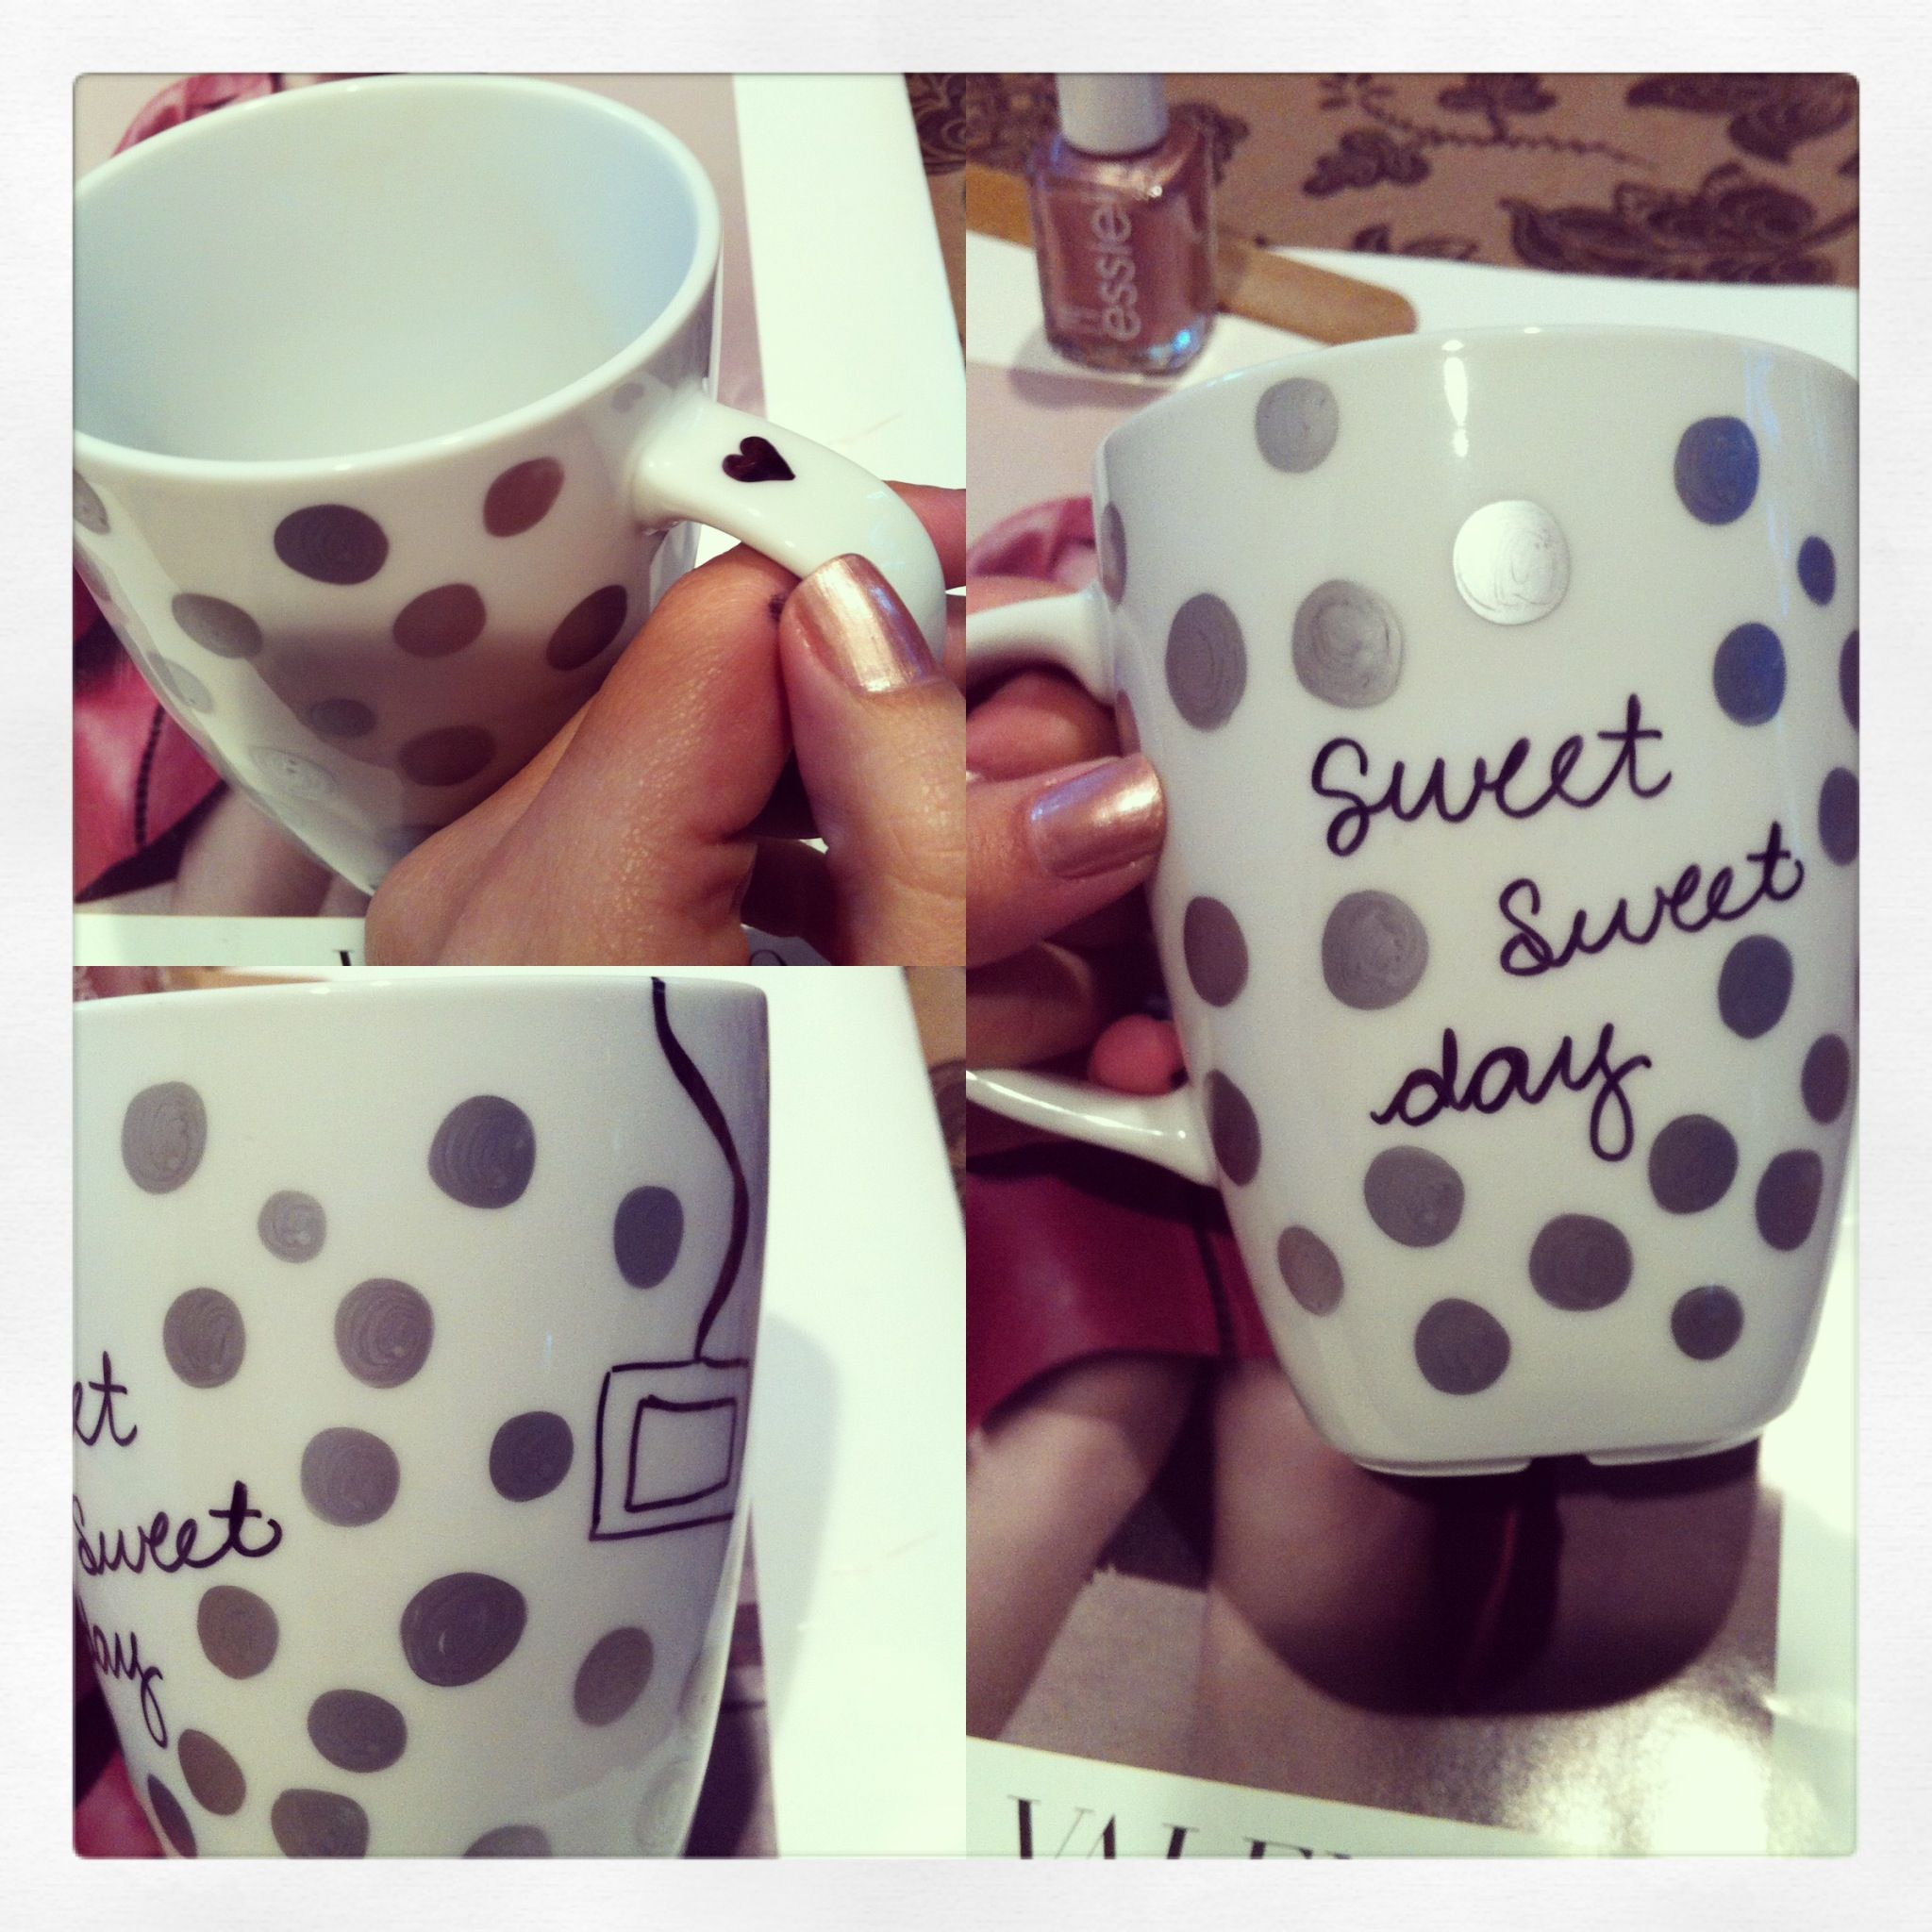 Sharpie mug. Nailed it! Design, bake at 350 degrees for 20 minutes and enjoy! Won't wash or scratch off.